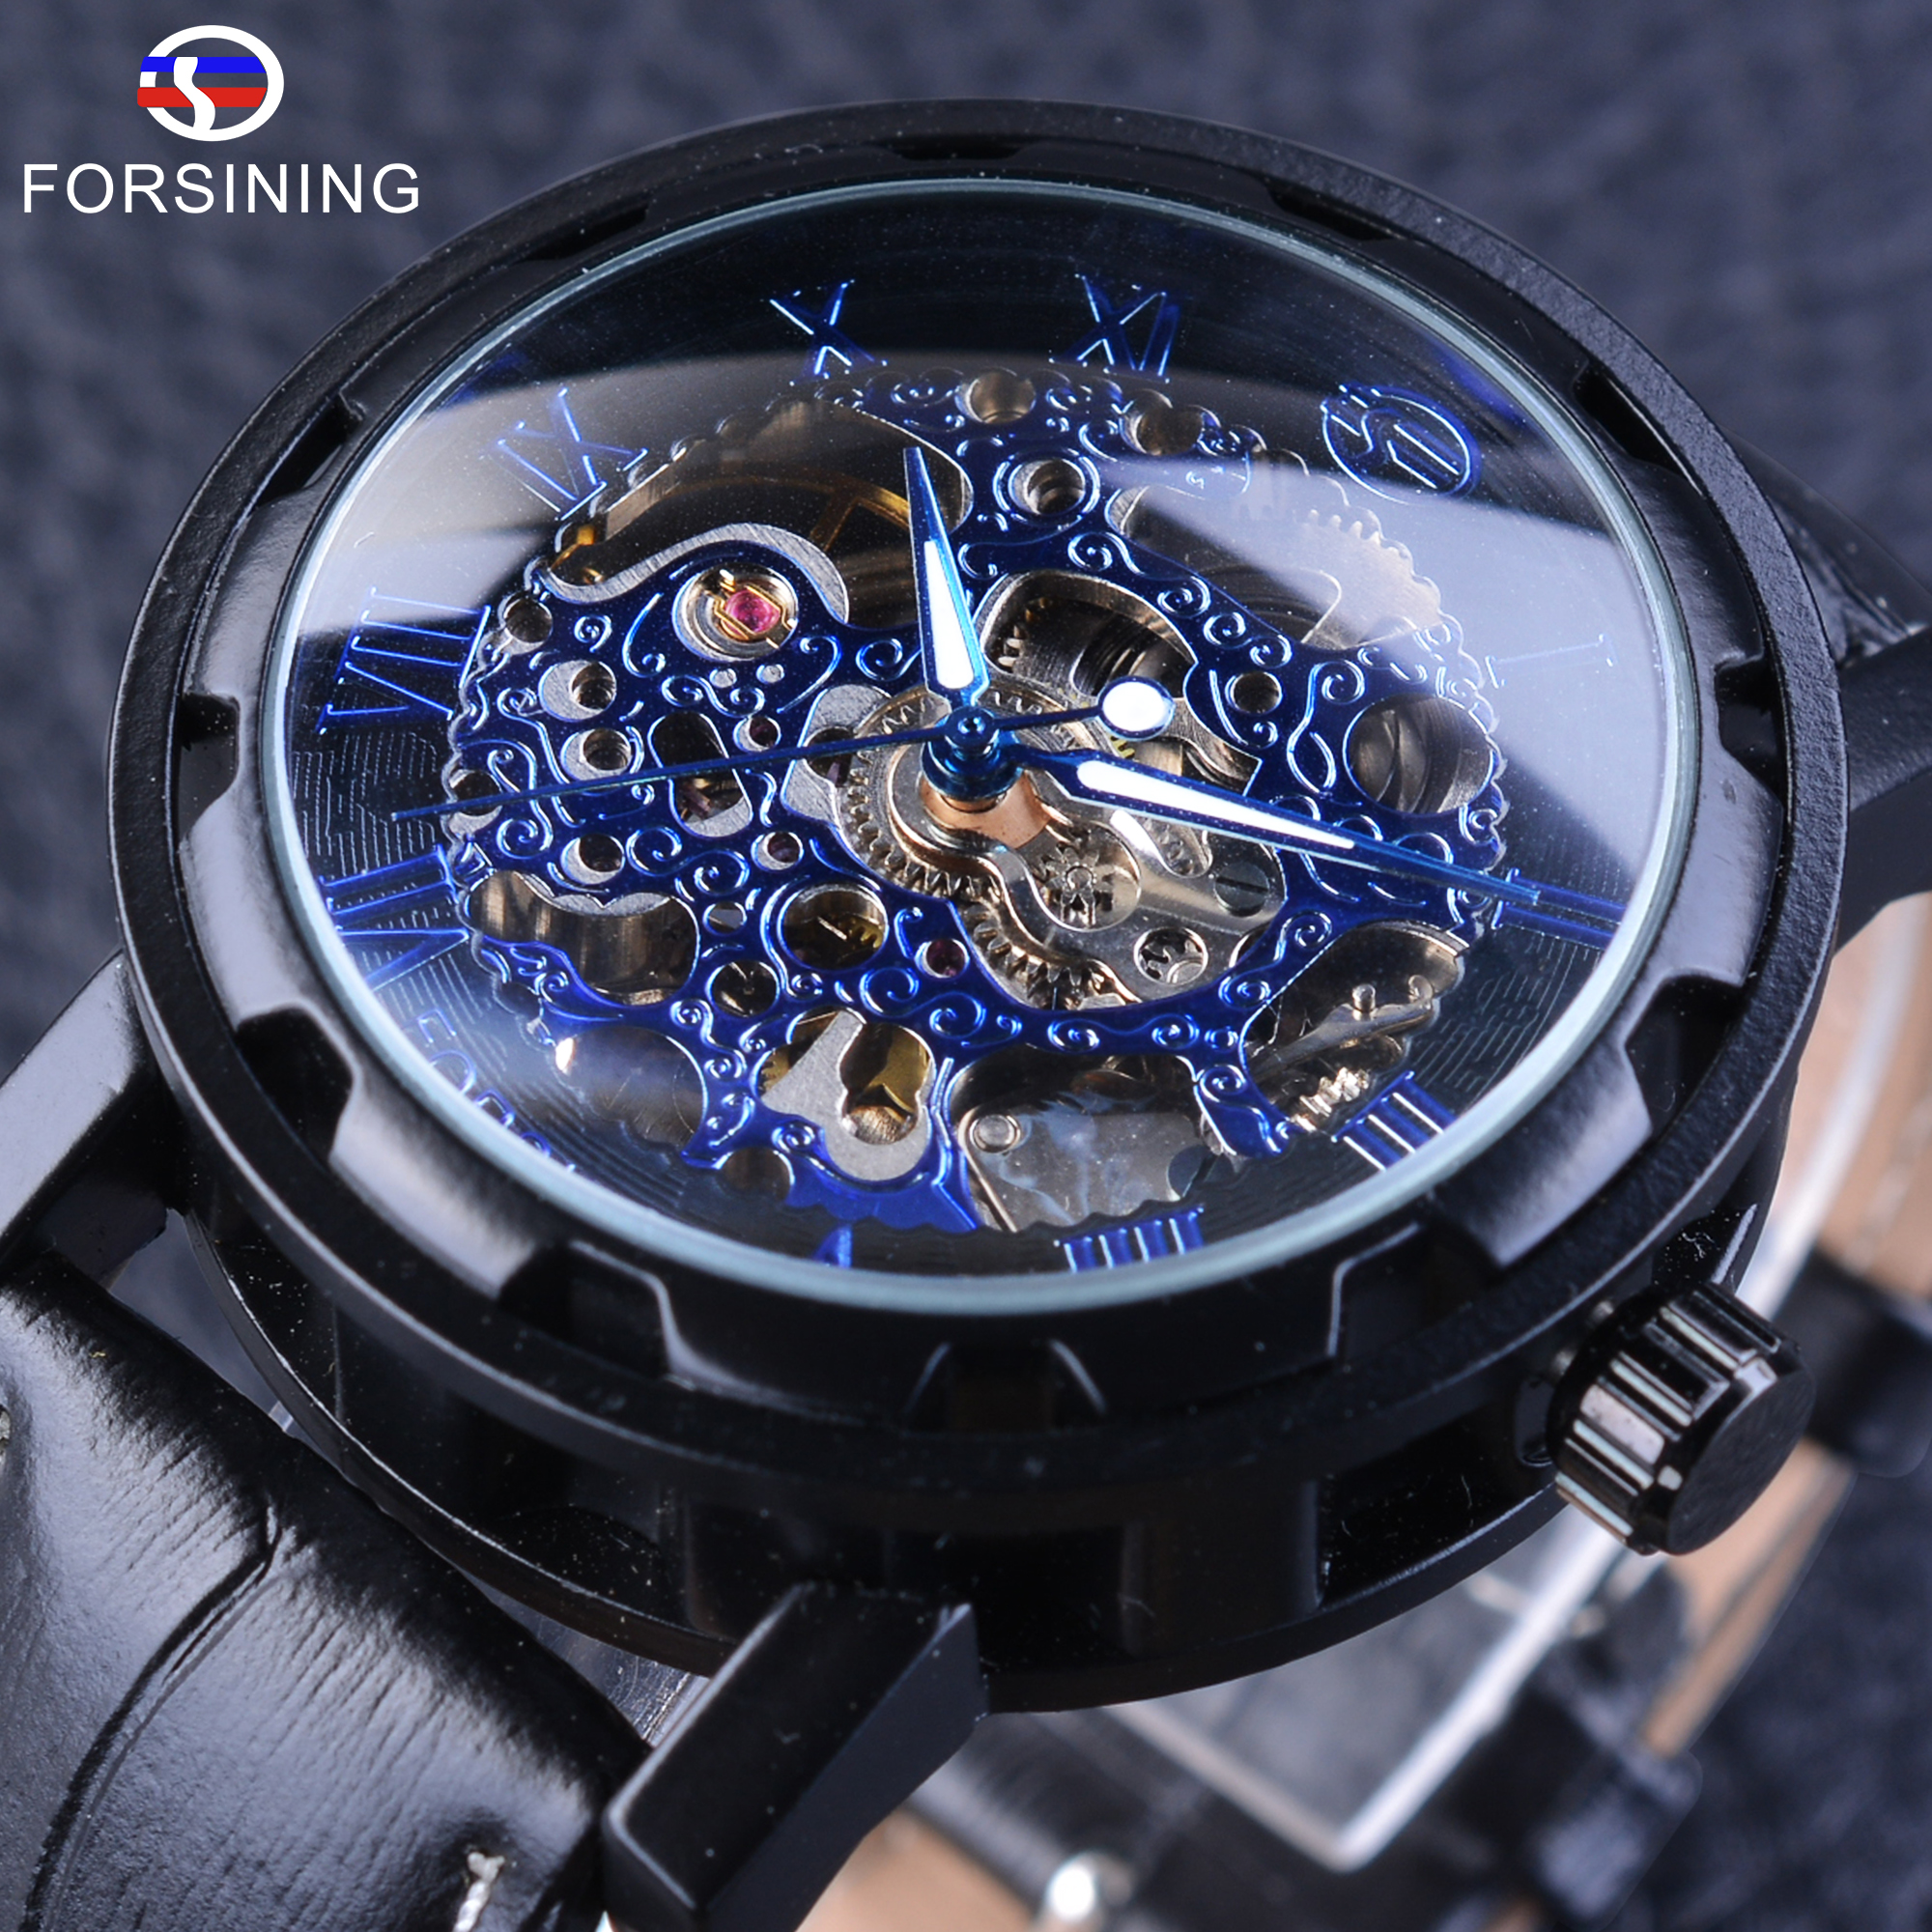 Forsining Men's Mechanical Watch Blue Black Skeleton Dial Automatic Self-wind Movement Genuine Leather Fashion Gear Bezel Design new arrivel white dial mens automatic skeleton mechanical watch with two movement freeship